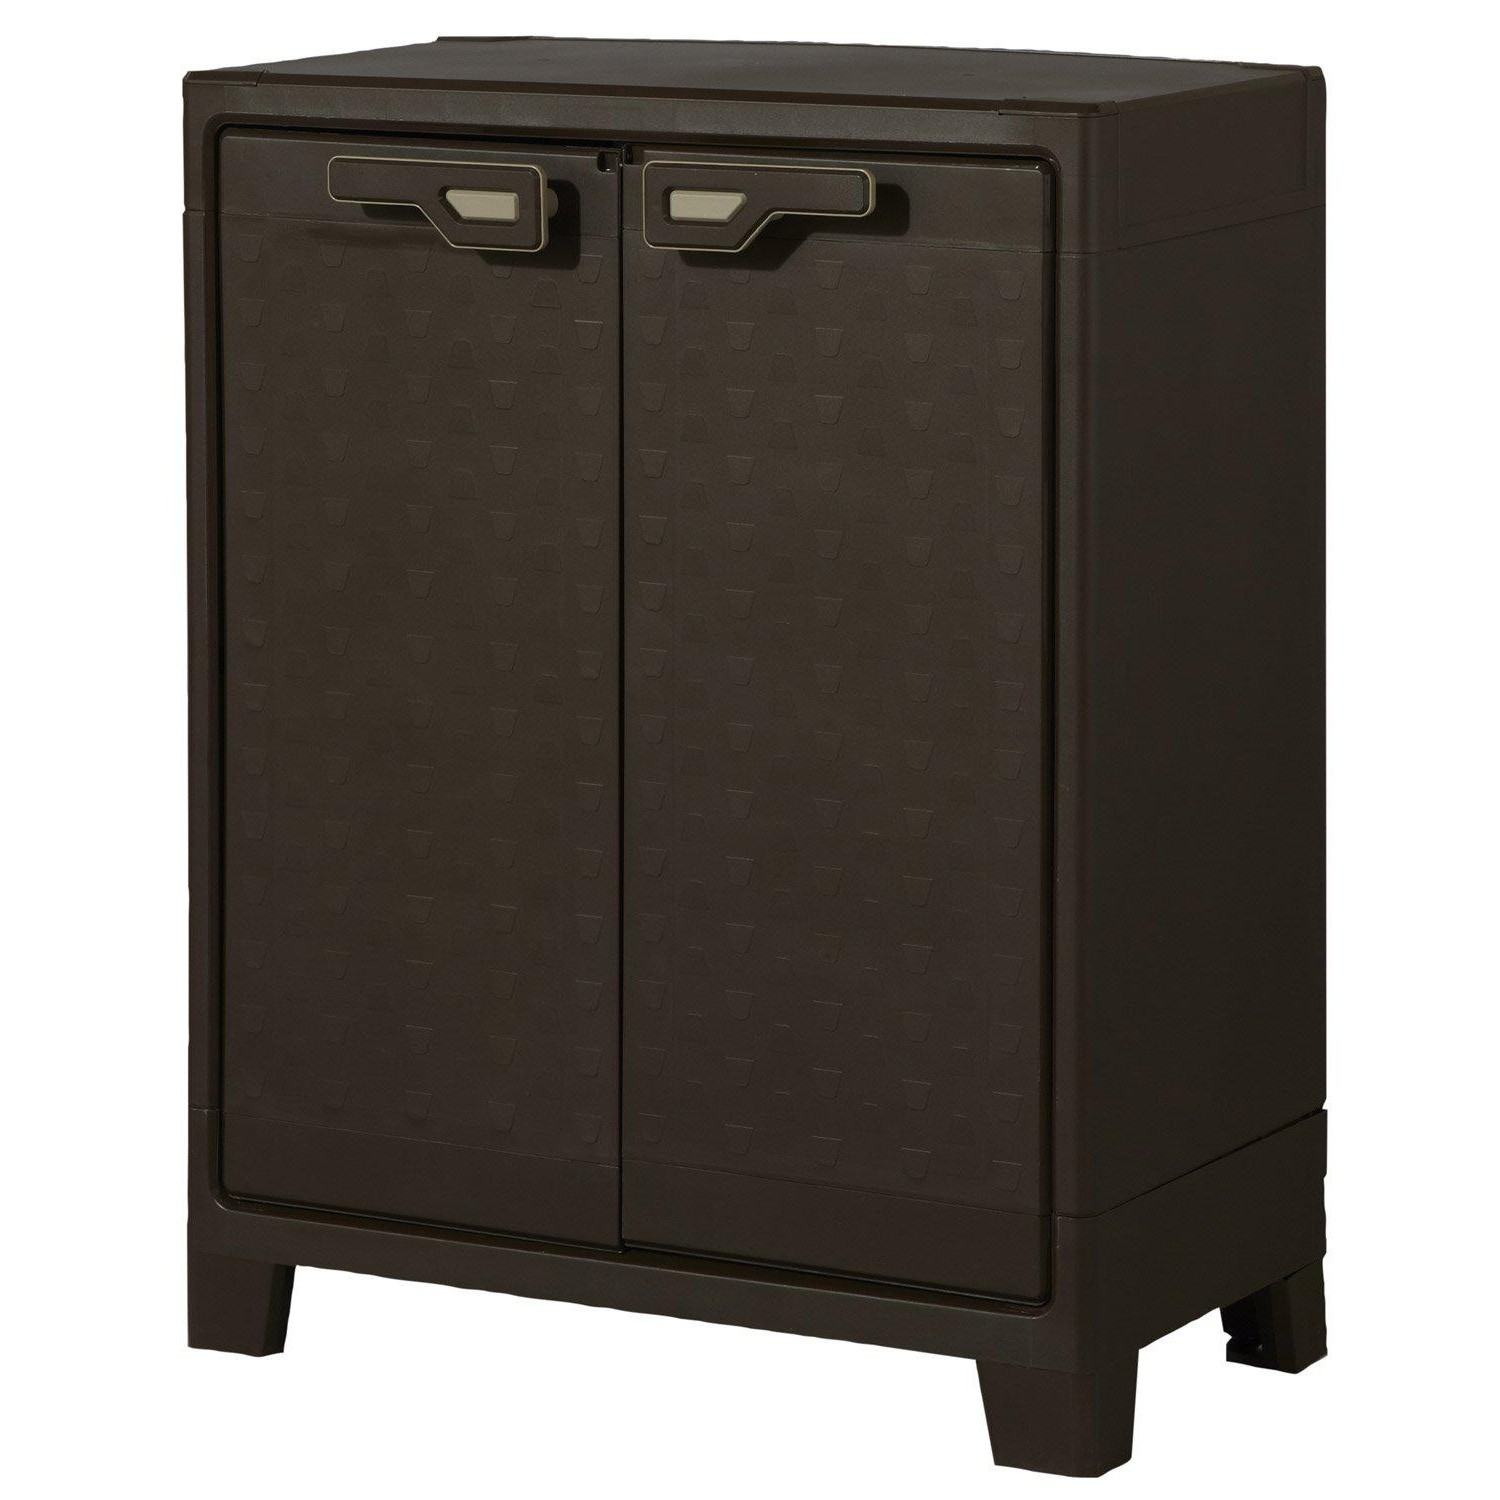 armoire de jardin en plastique leroy merlin armoire. Black Bedroom Furniture Sets. Home Design Ideas